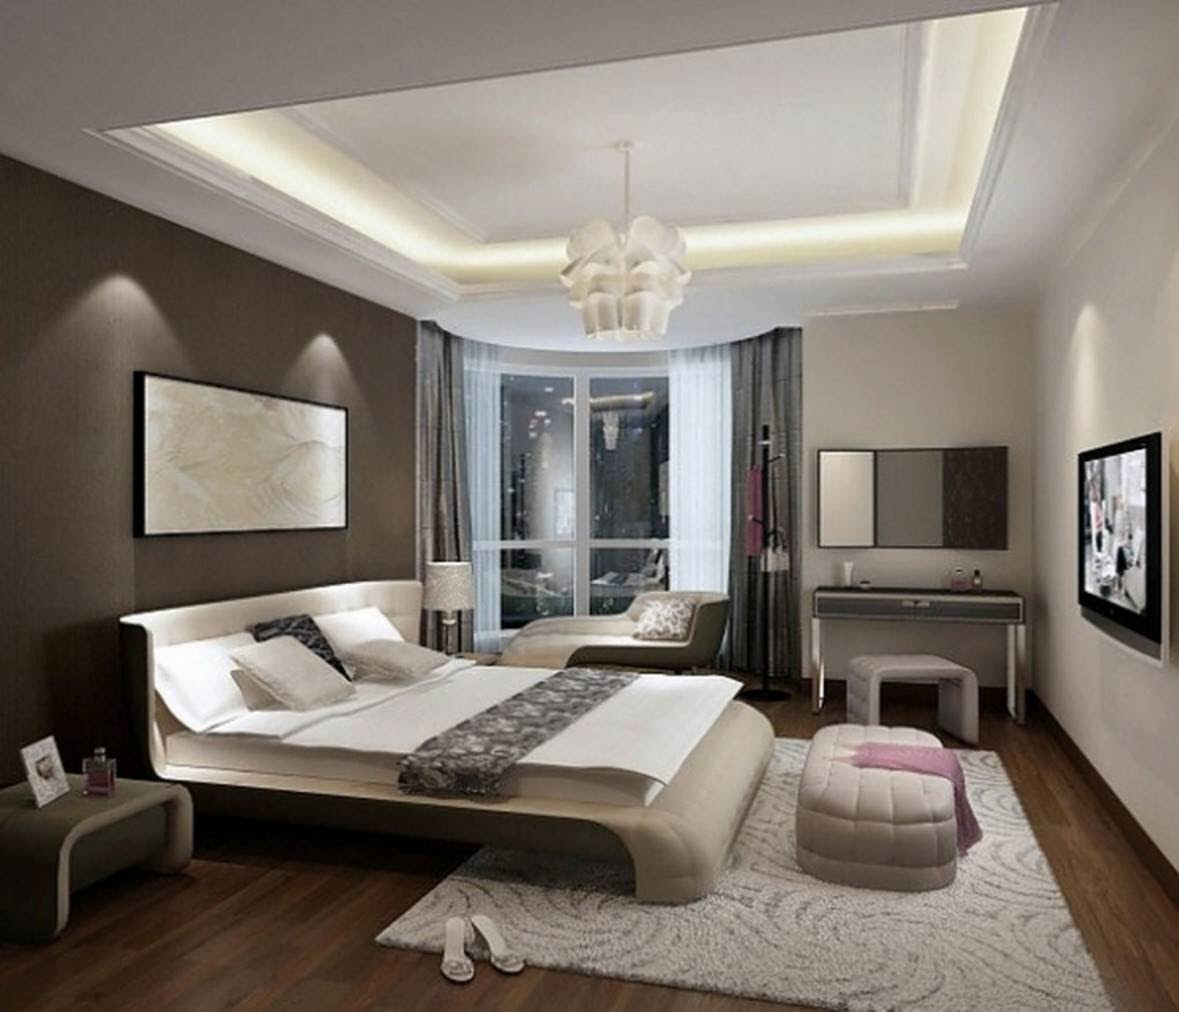 25 Tips For Designing SmallSized Bedrooms Got Bigger With Minimalist Home.